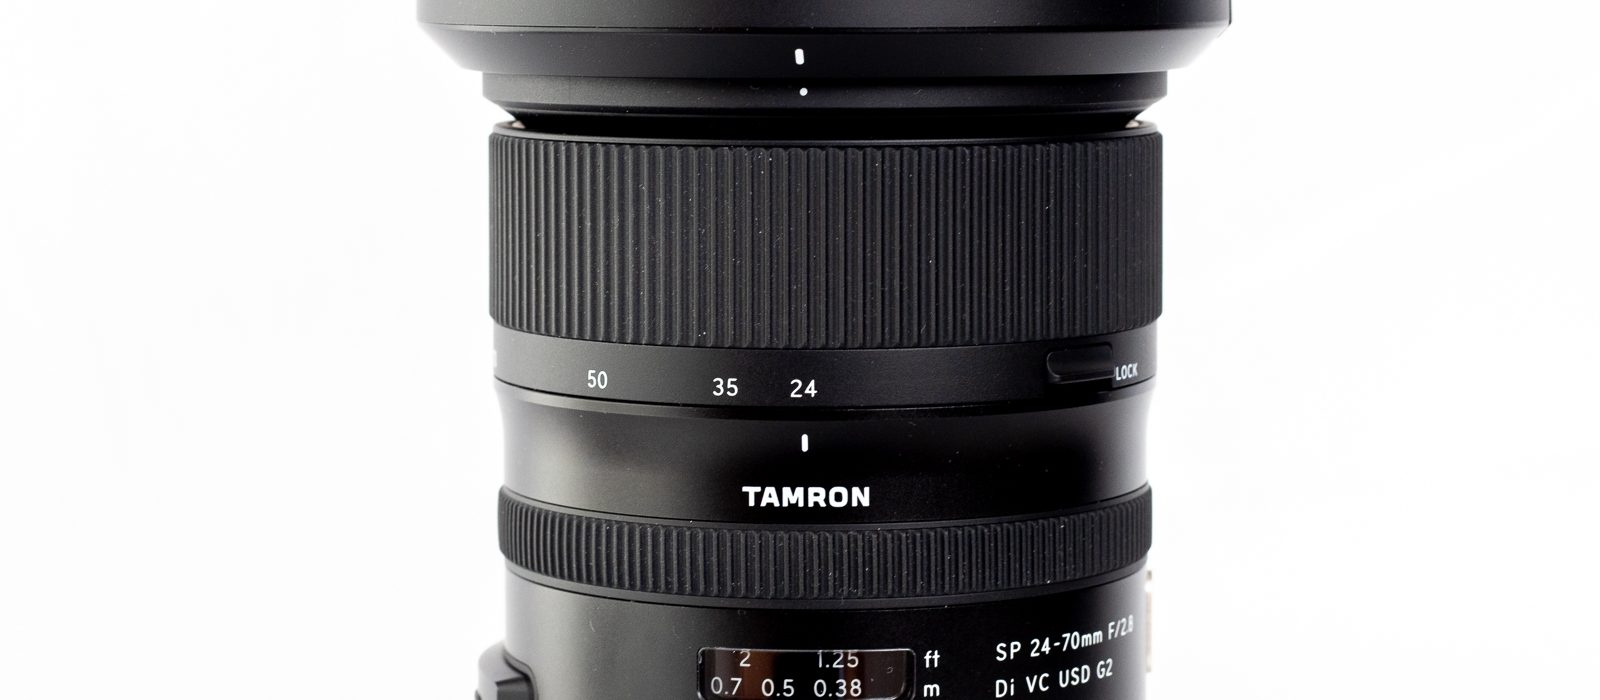 Tamron 24-70mm f/2.8 Di VC USD G2 - Norbert Eder Photography